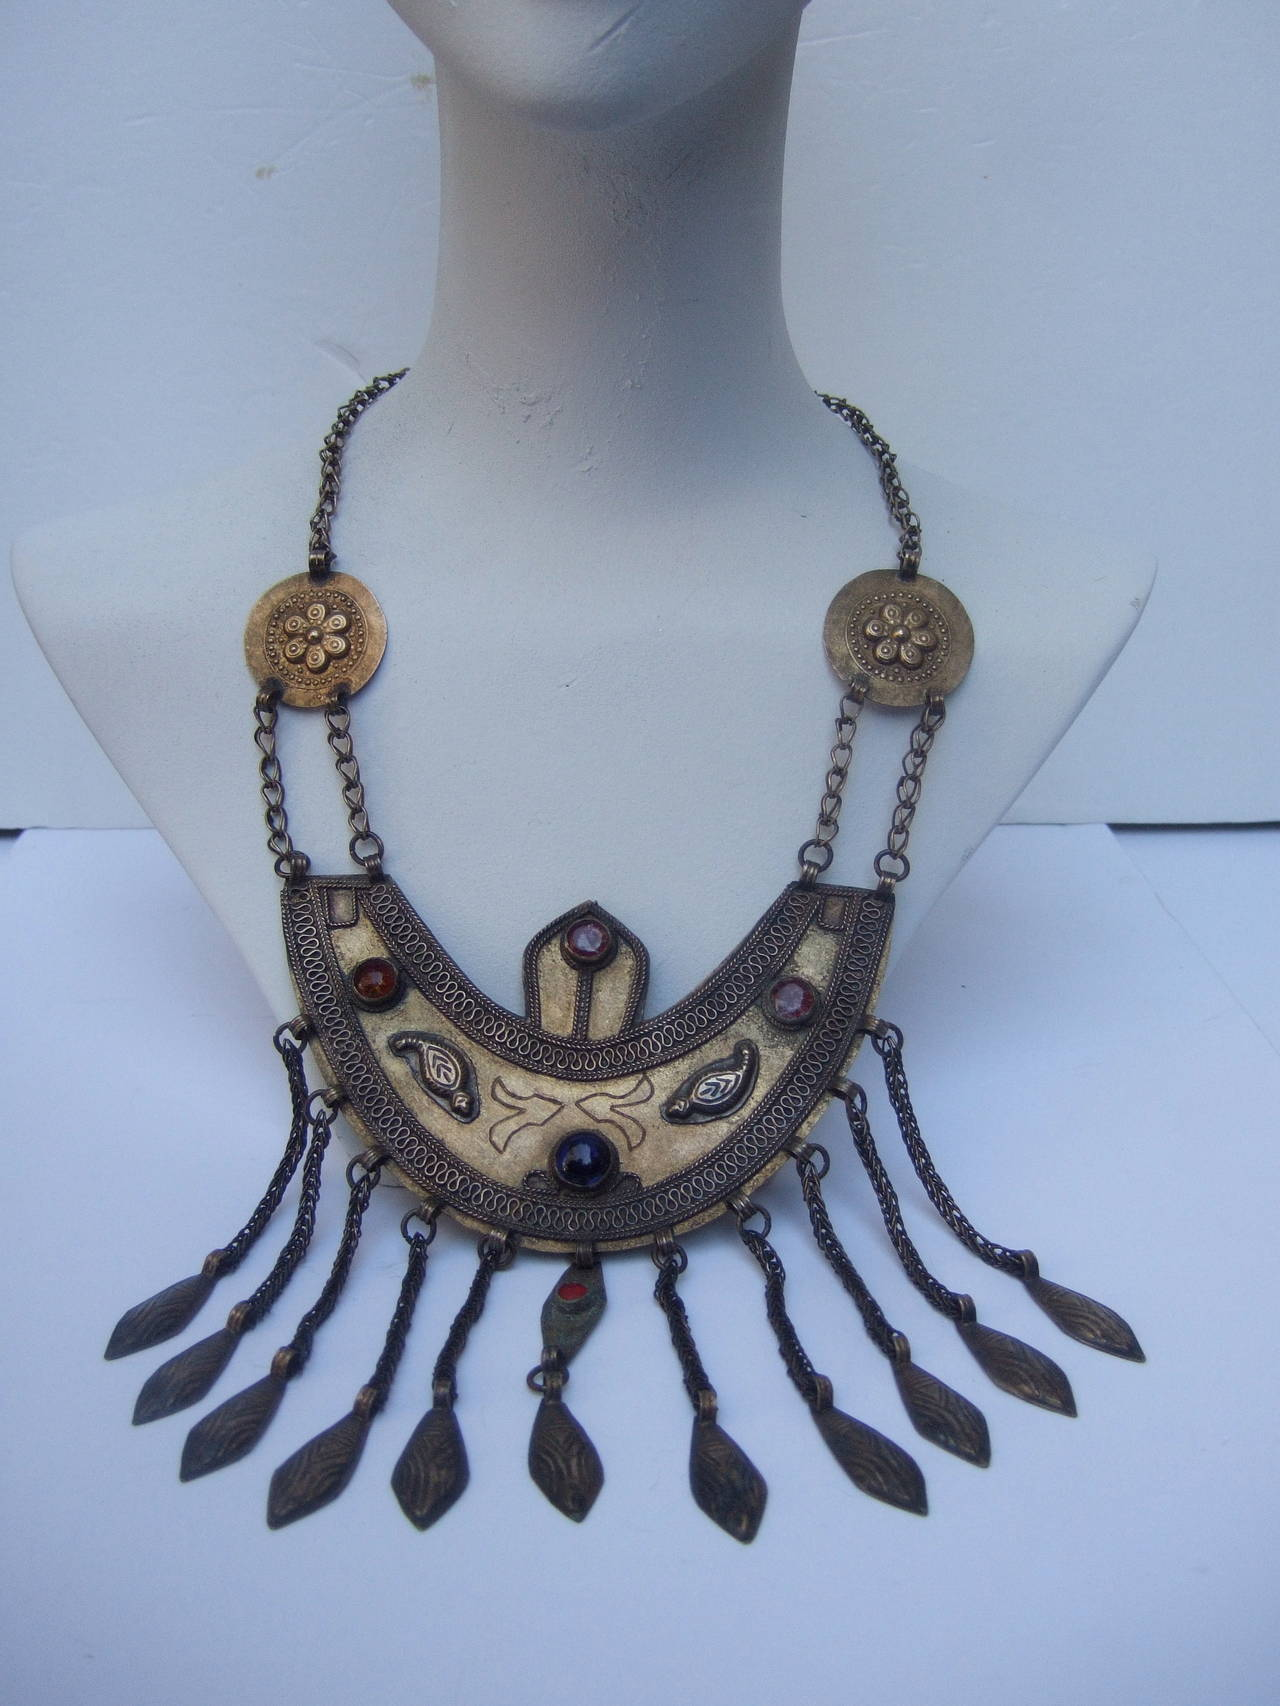 Women's Massive Egyptian Revival Style Jeweled Serpent Ceremonial Necklace For Sale